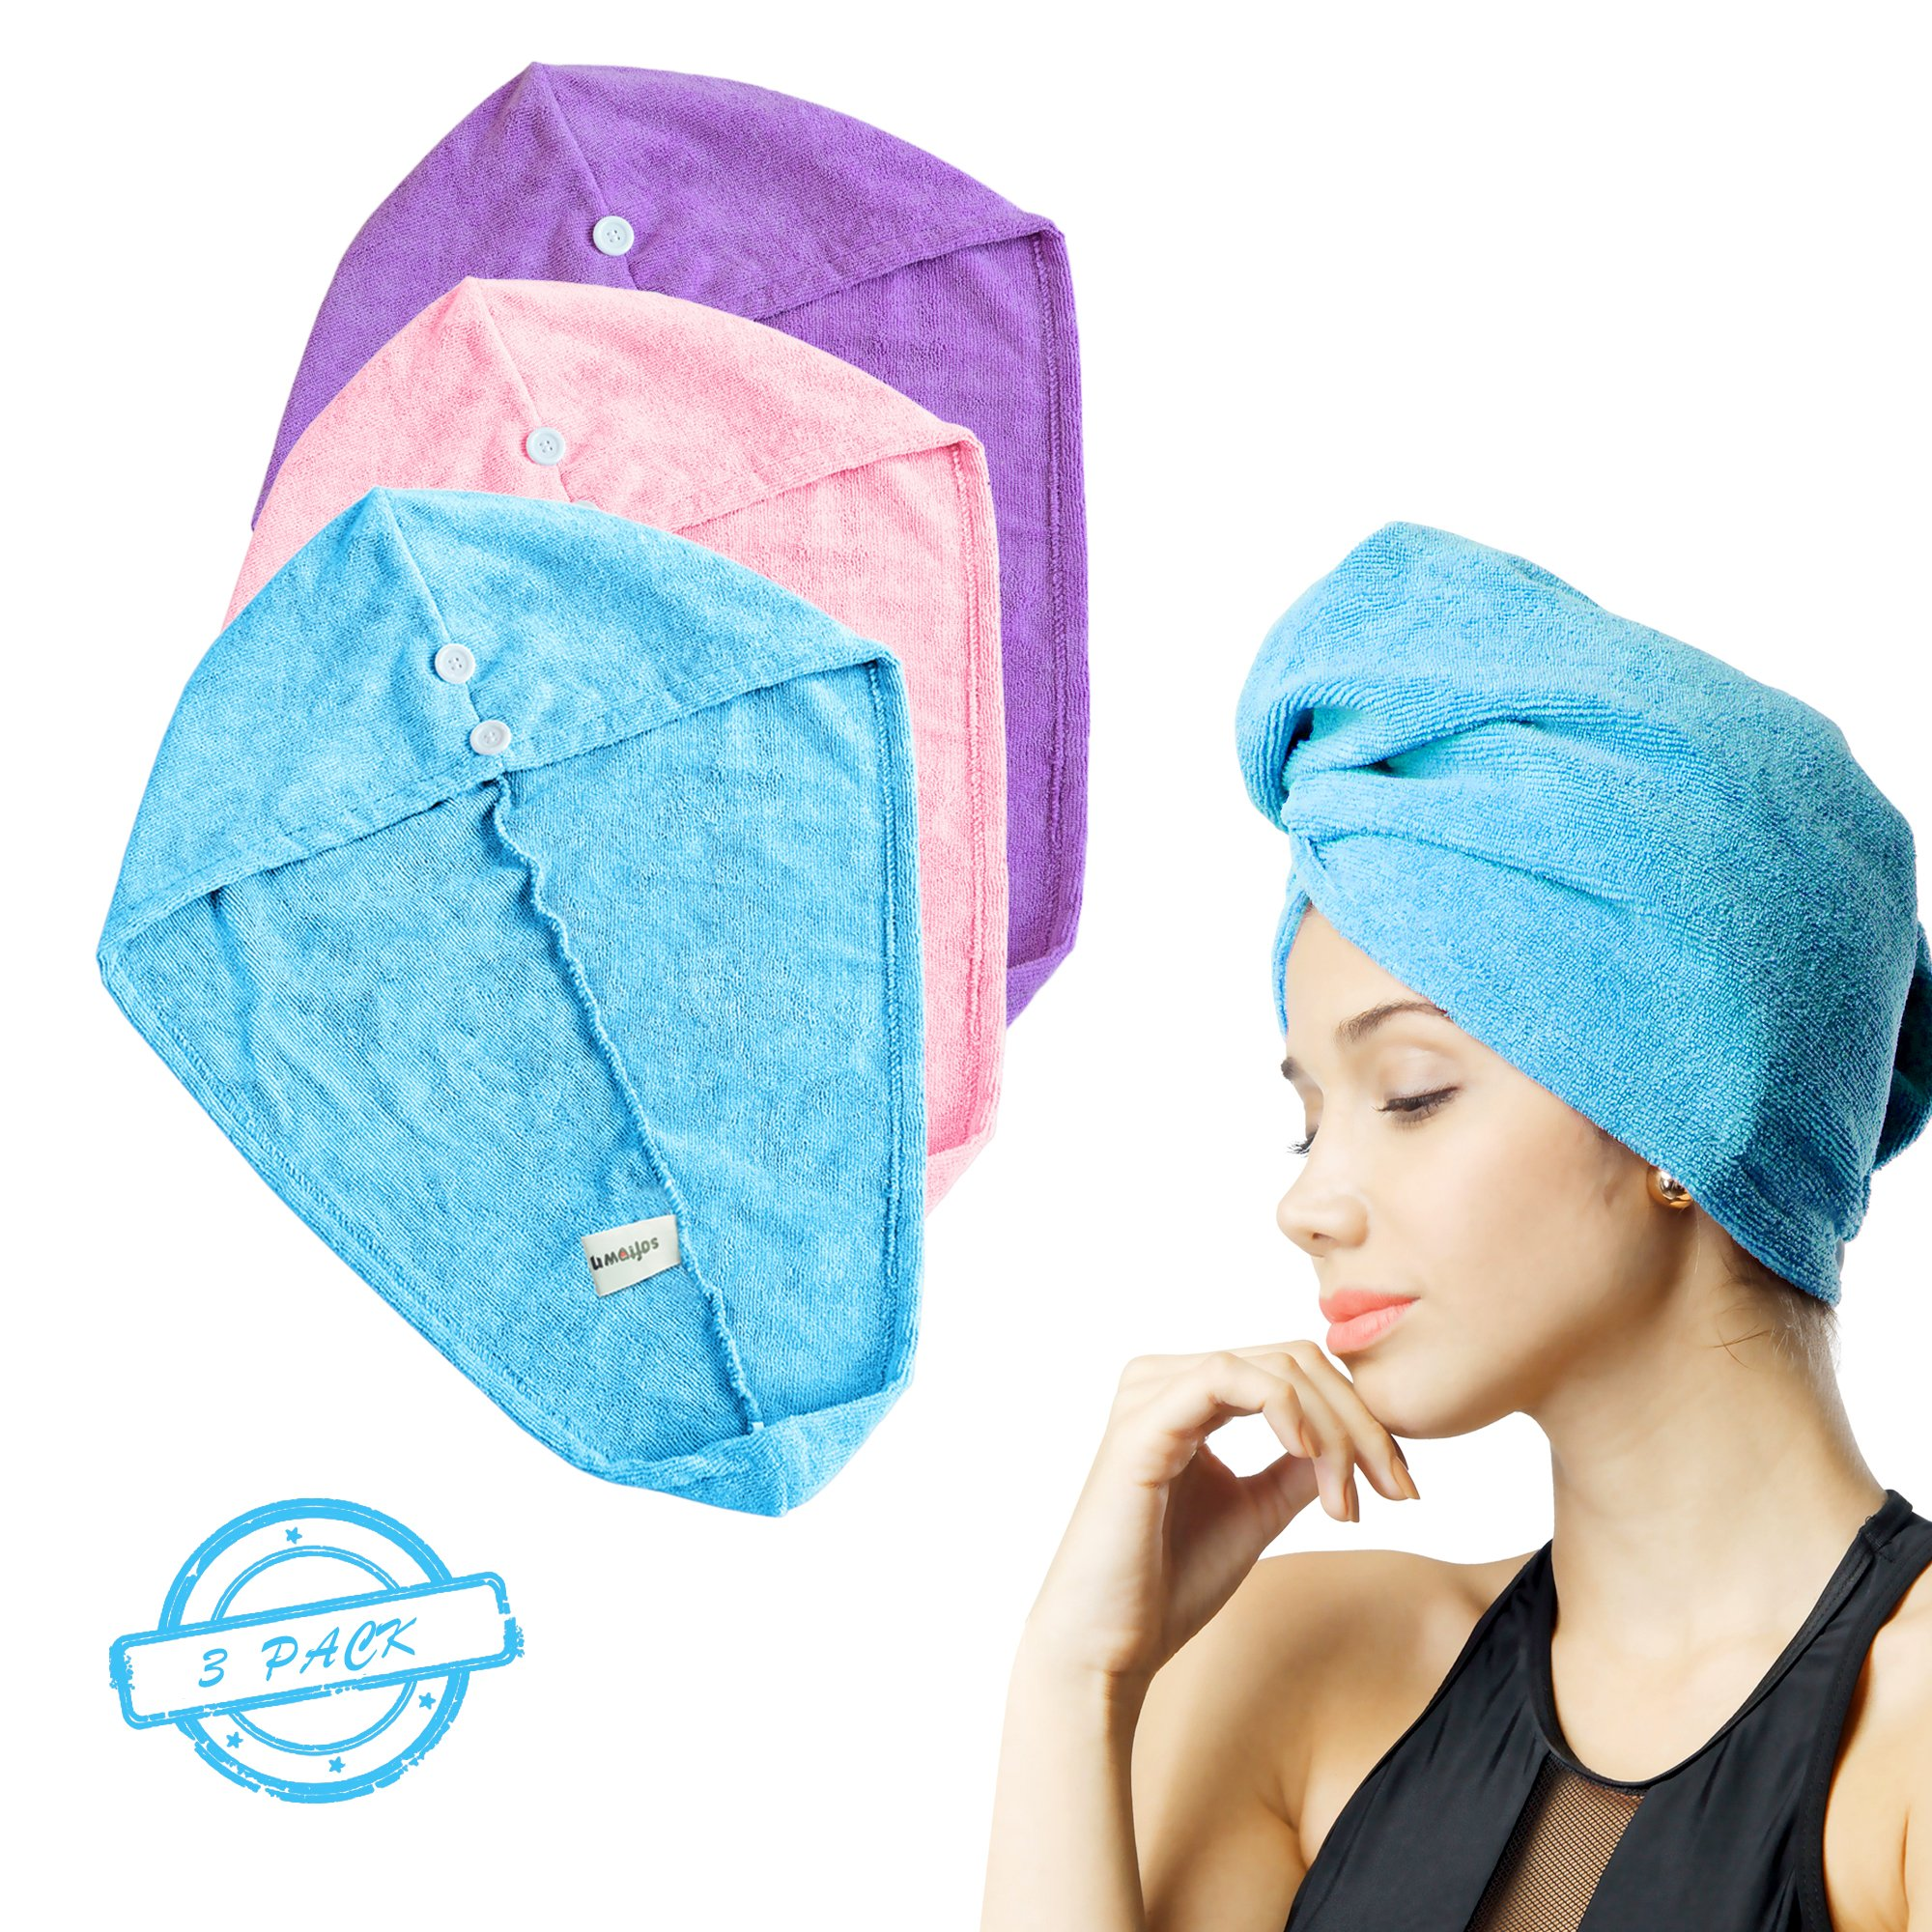 SOFTOWN Microfiber Hair Drying Towel Wrap Super Absorbent for Women with Short Hair (11 x 28 inch, 3 Colours pack)